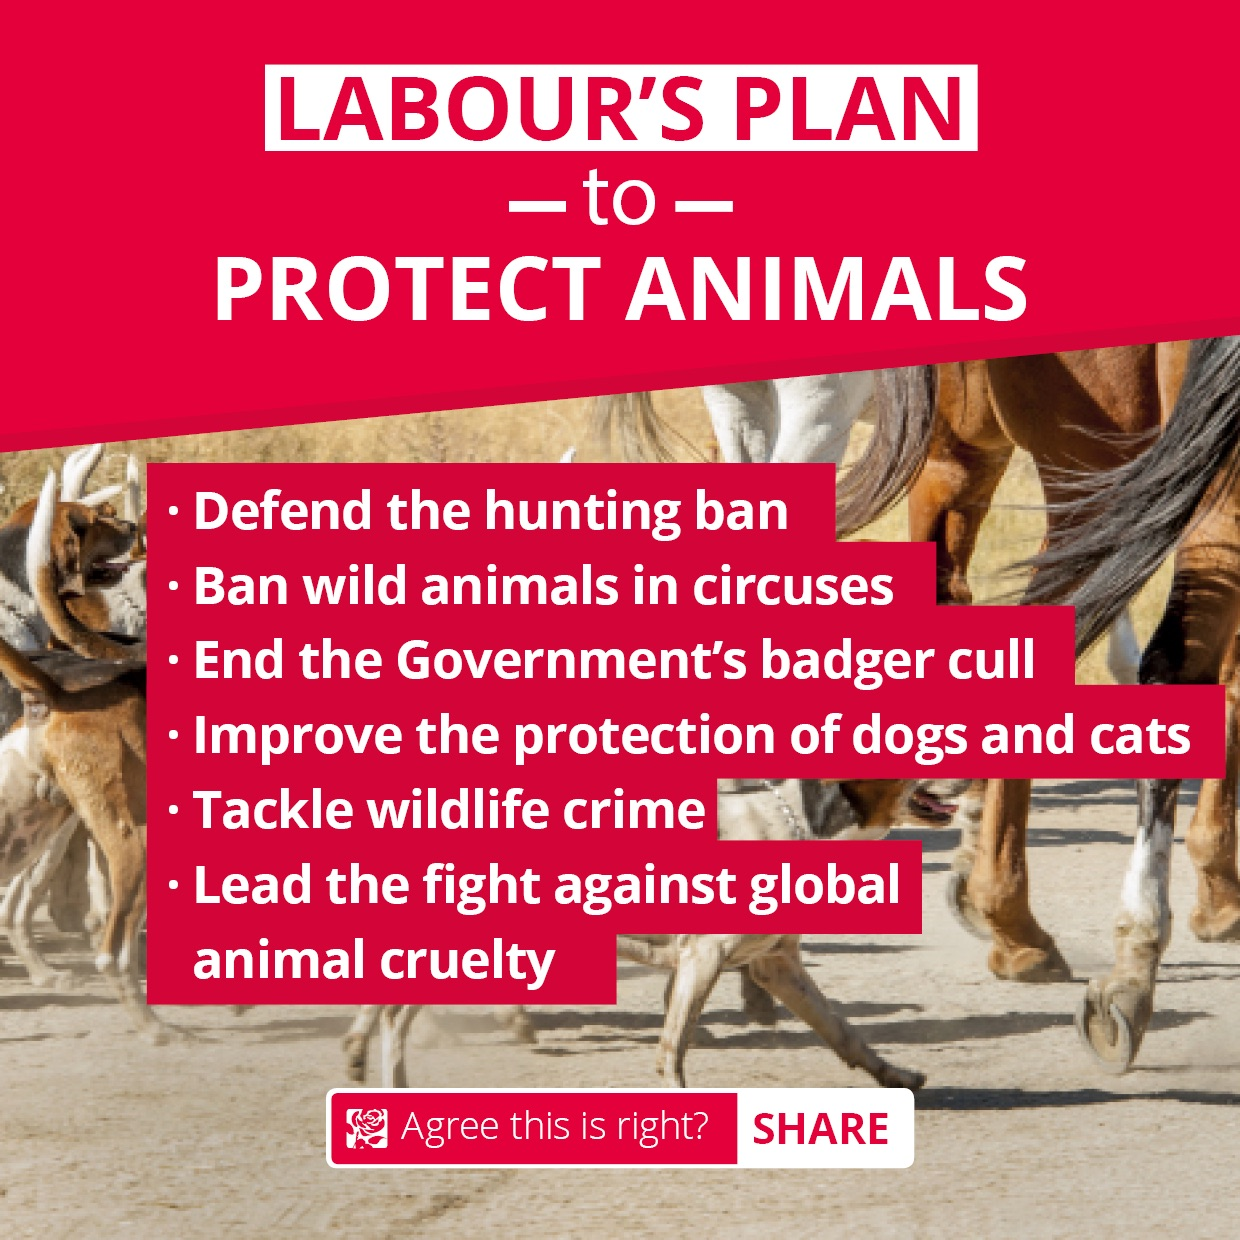 animal_protection_plan_-_facebook_image.jpg